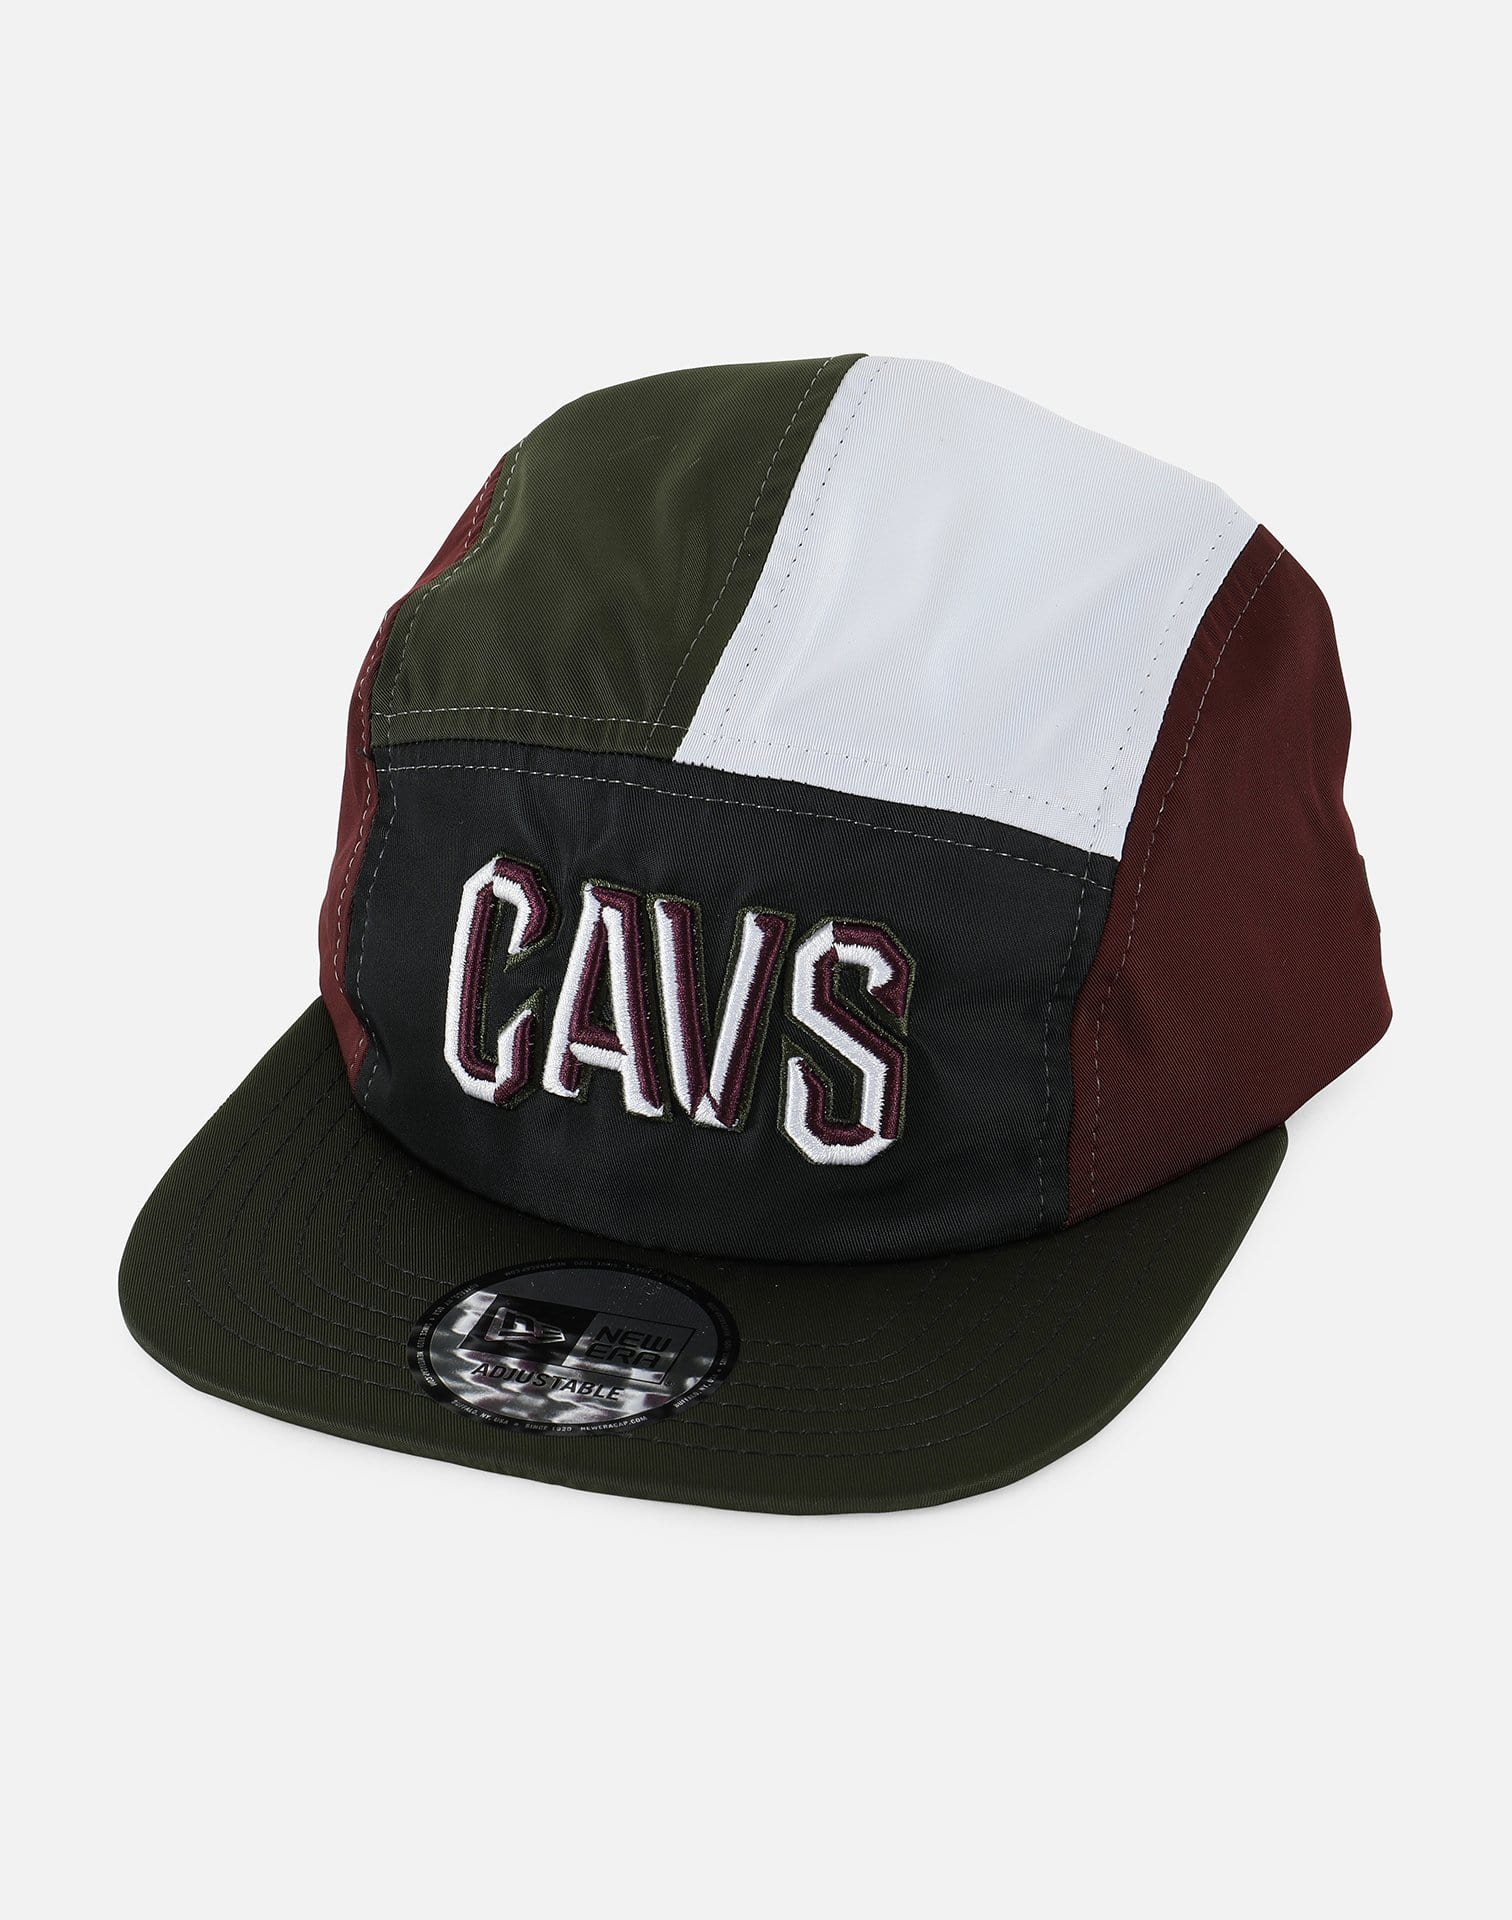 New Era Exclusive Customs NBA Cleveland Cavaliers Camper 008 Strapback Hat